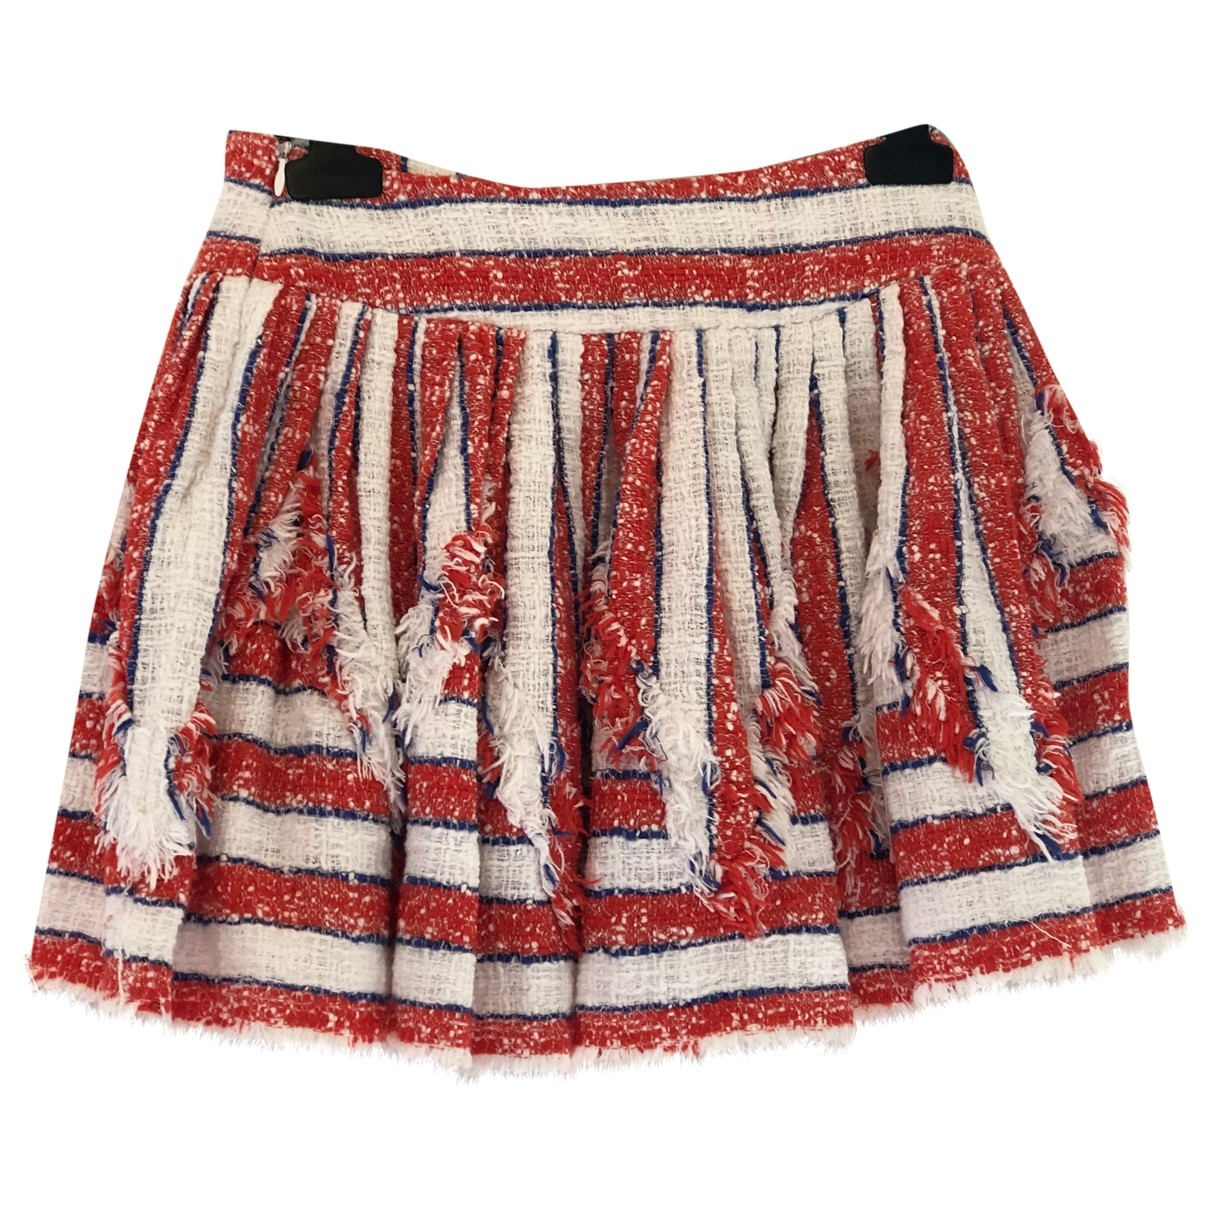 Msgm \N Red Cotton skirt for Women 40 IT